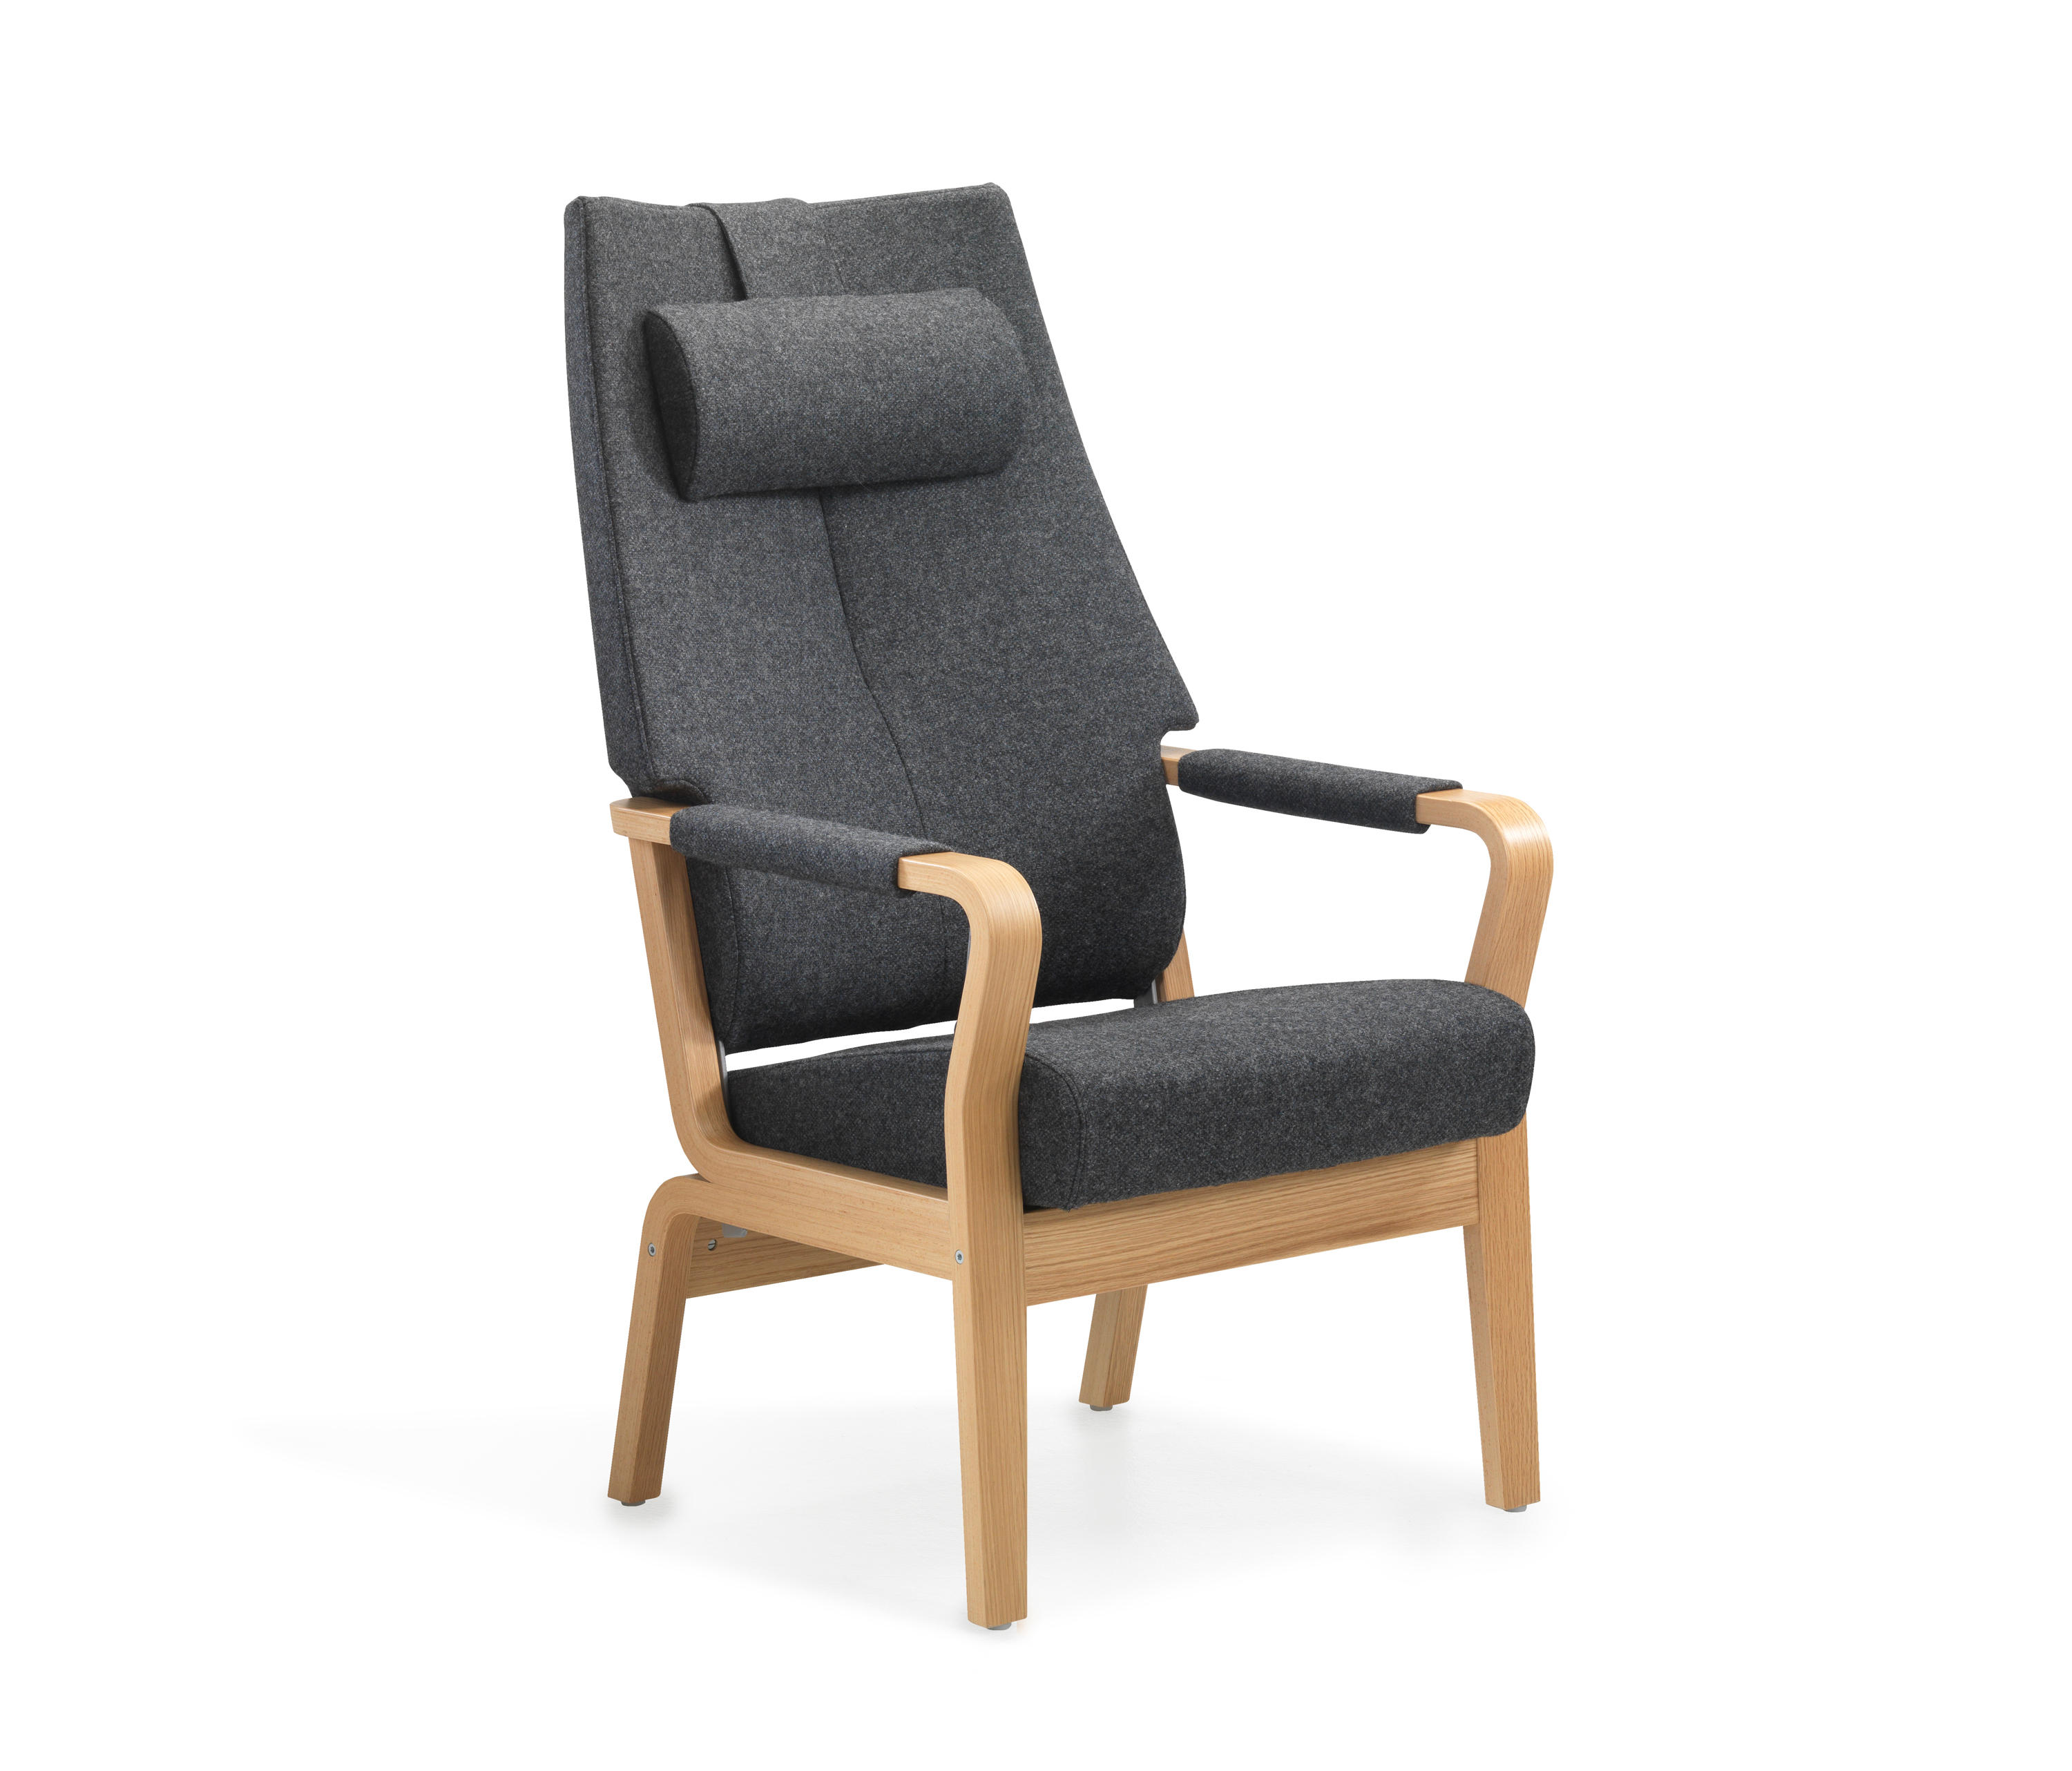 Duun recliner chair | Elderly care armchairs | Helland  sc 1 st  Architonic : recliner chairs for seniors - islam-shia.org